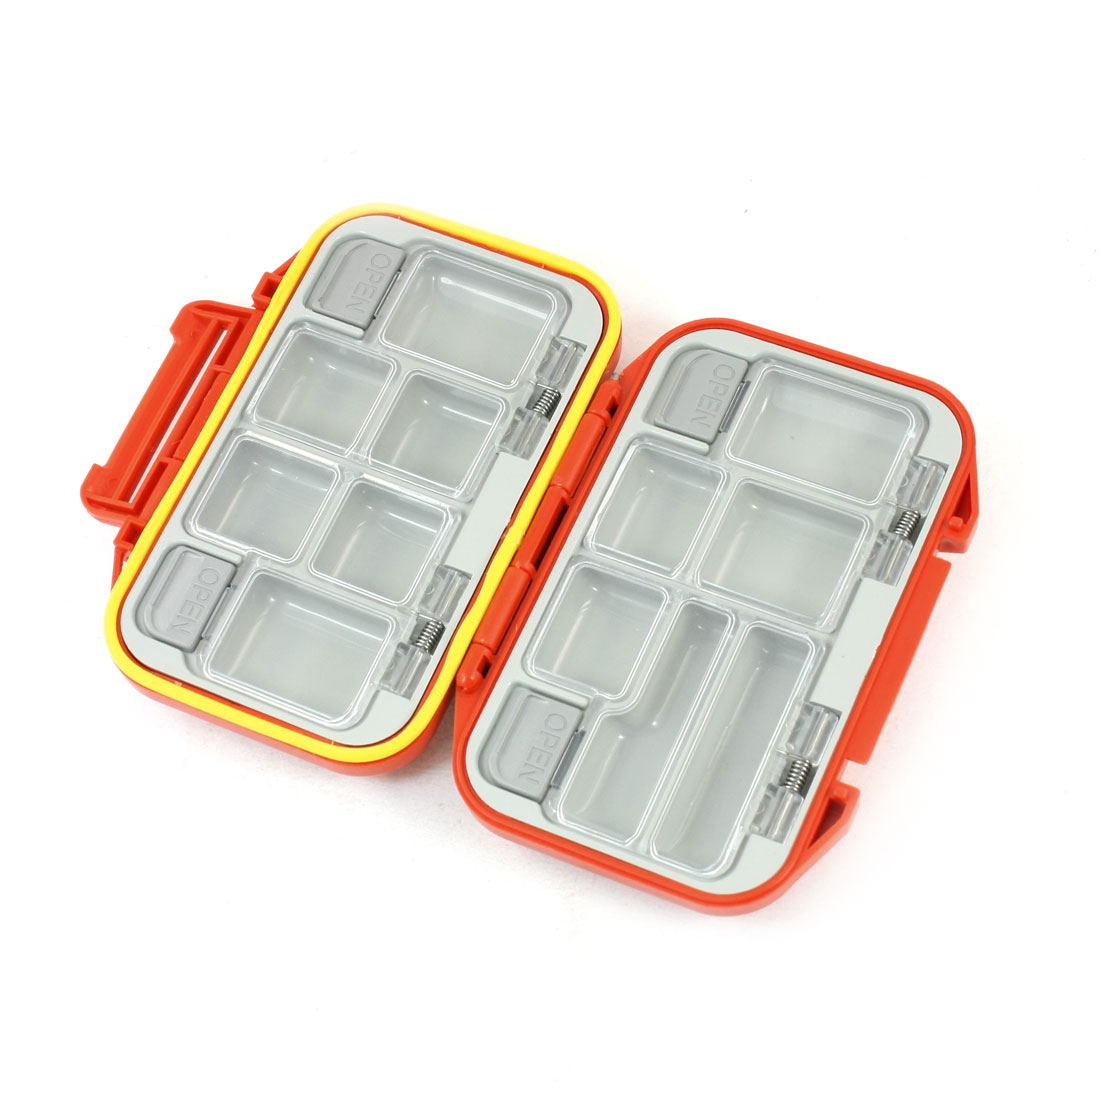 12-Compartments Hard Plastic Fishing Hook Box Container Orange Red